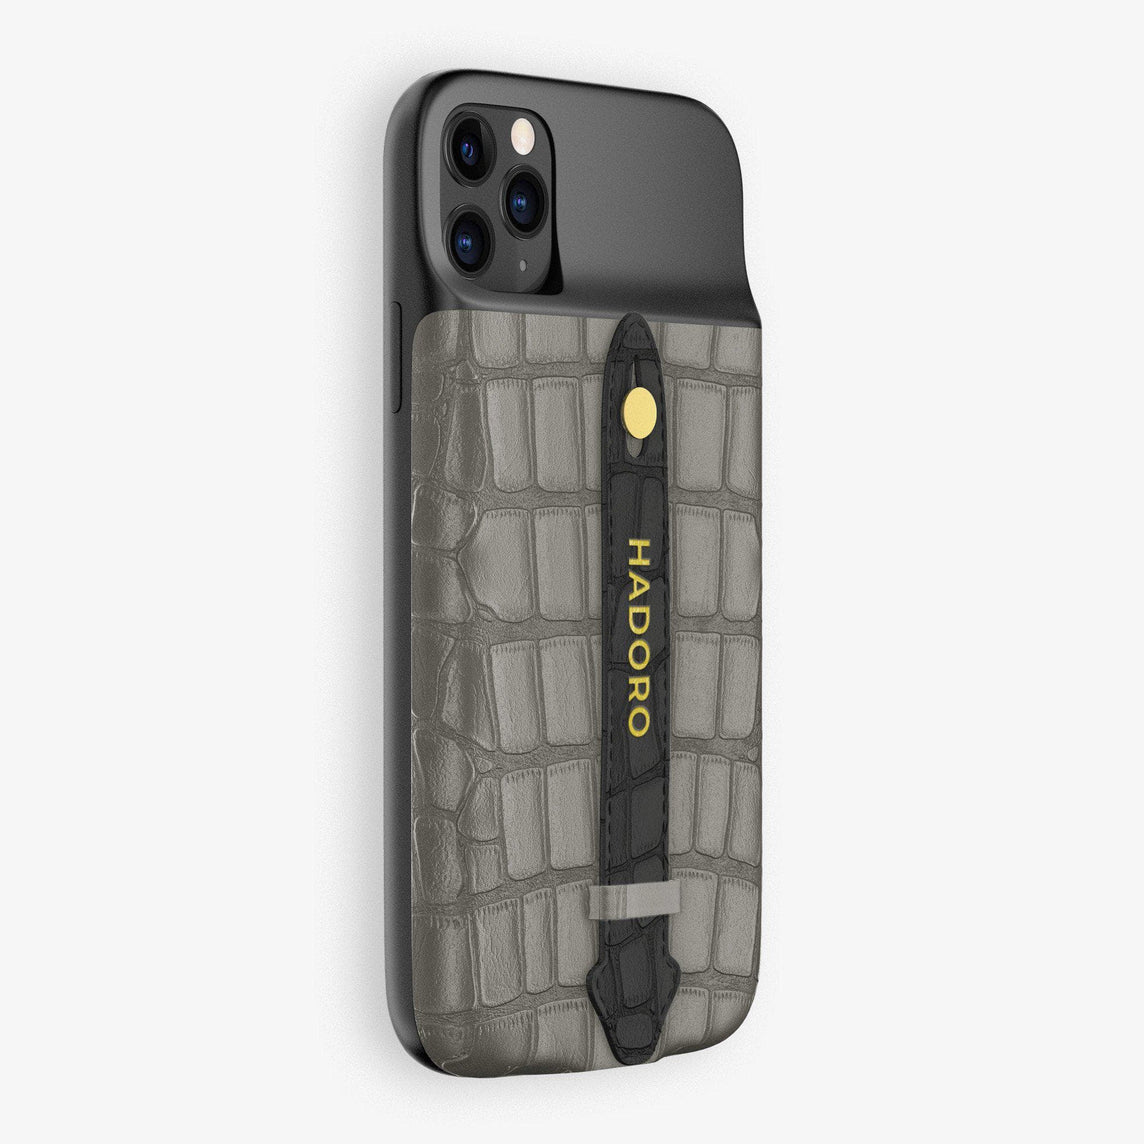 Alligator Battery Finger Case for iPhone 11 Pro Max | Grey/Black - Yellow Gold